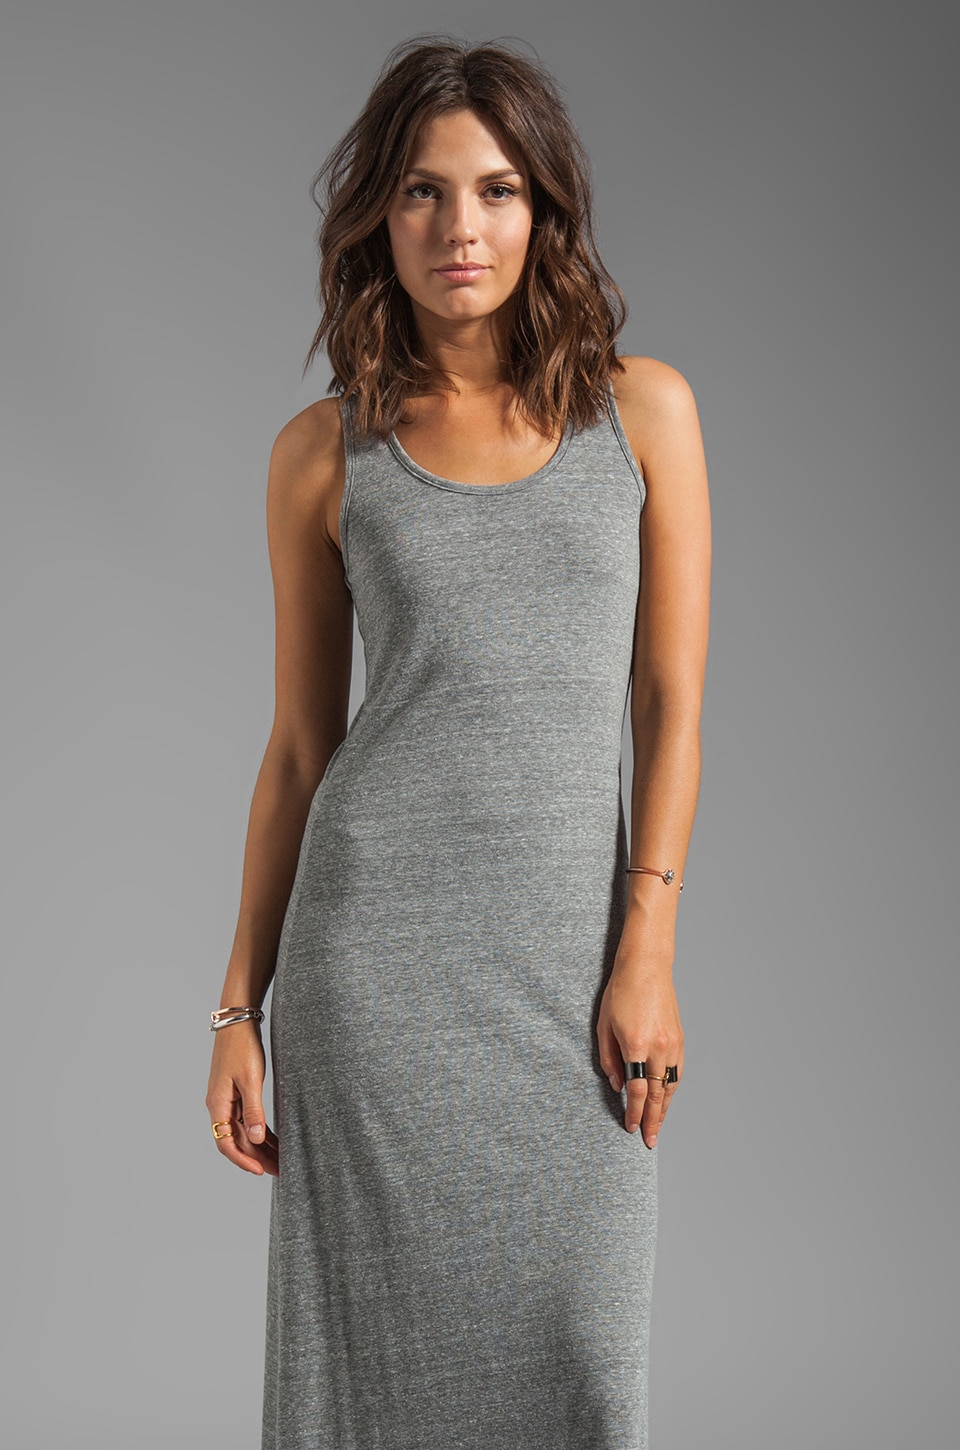 Whetherly Maryam Jersey Dress in Pebble